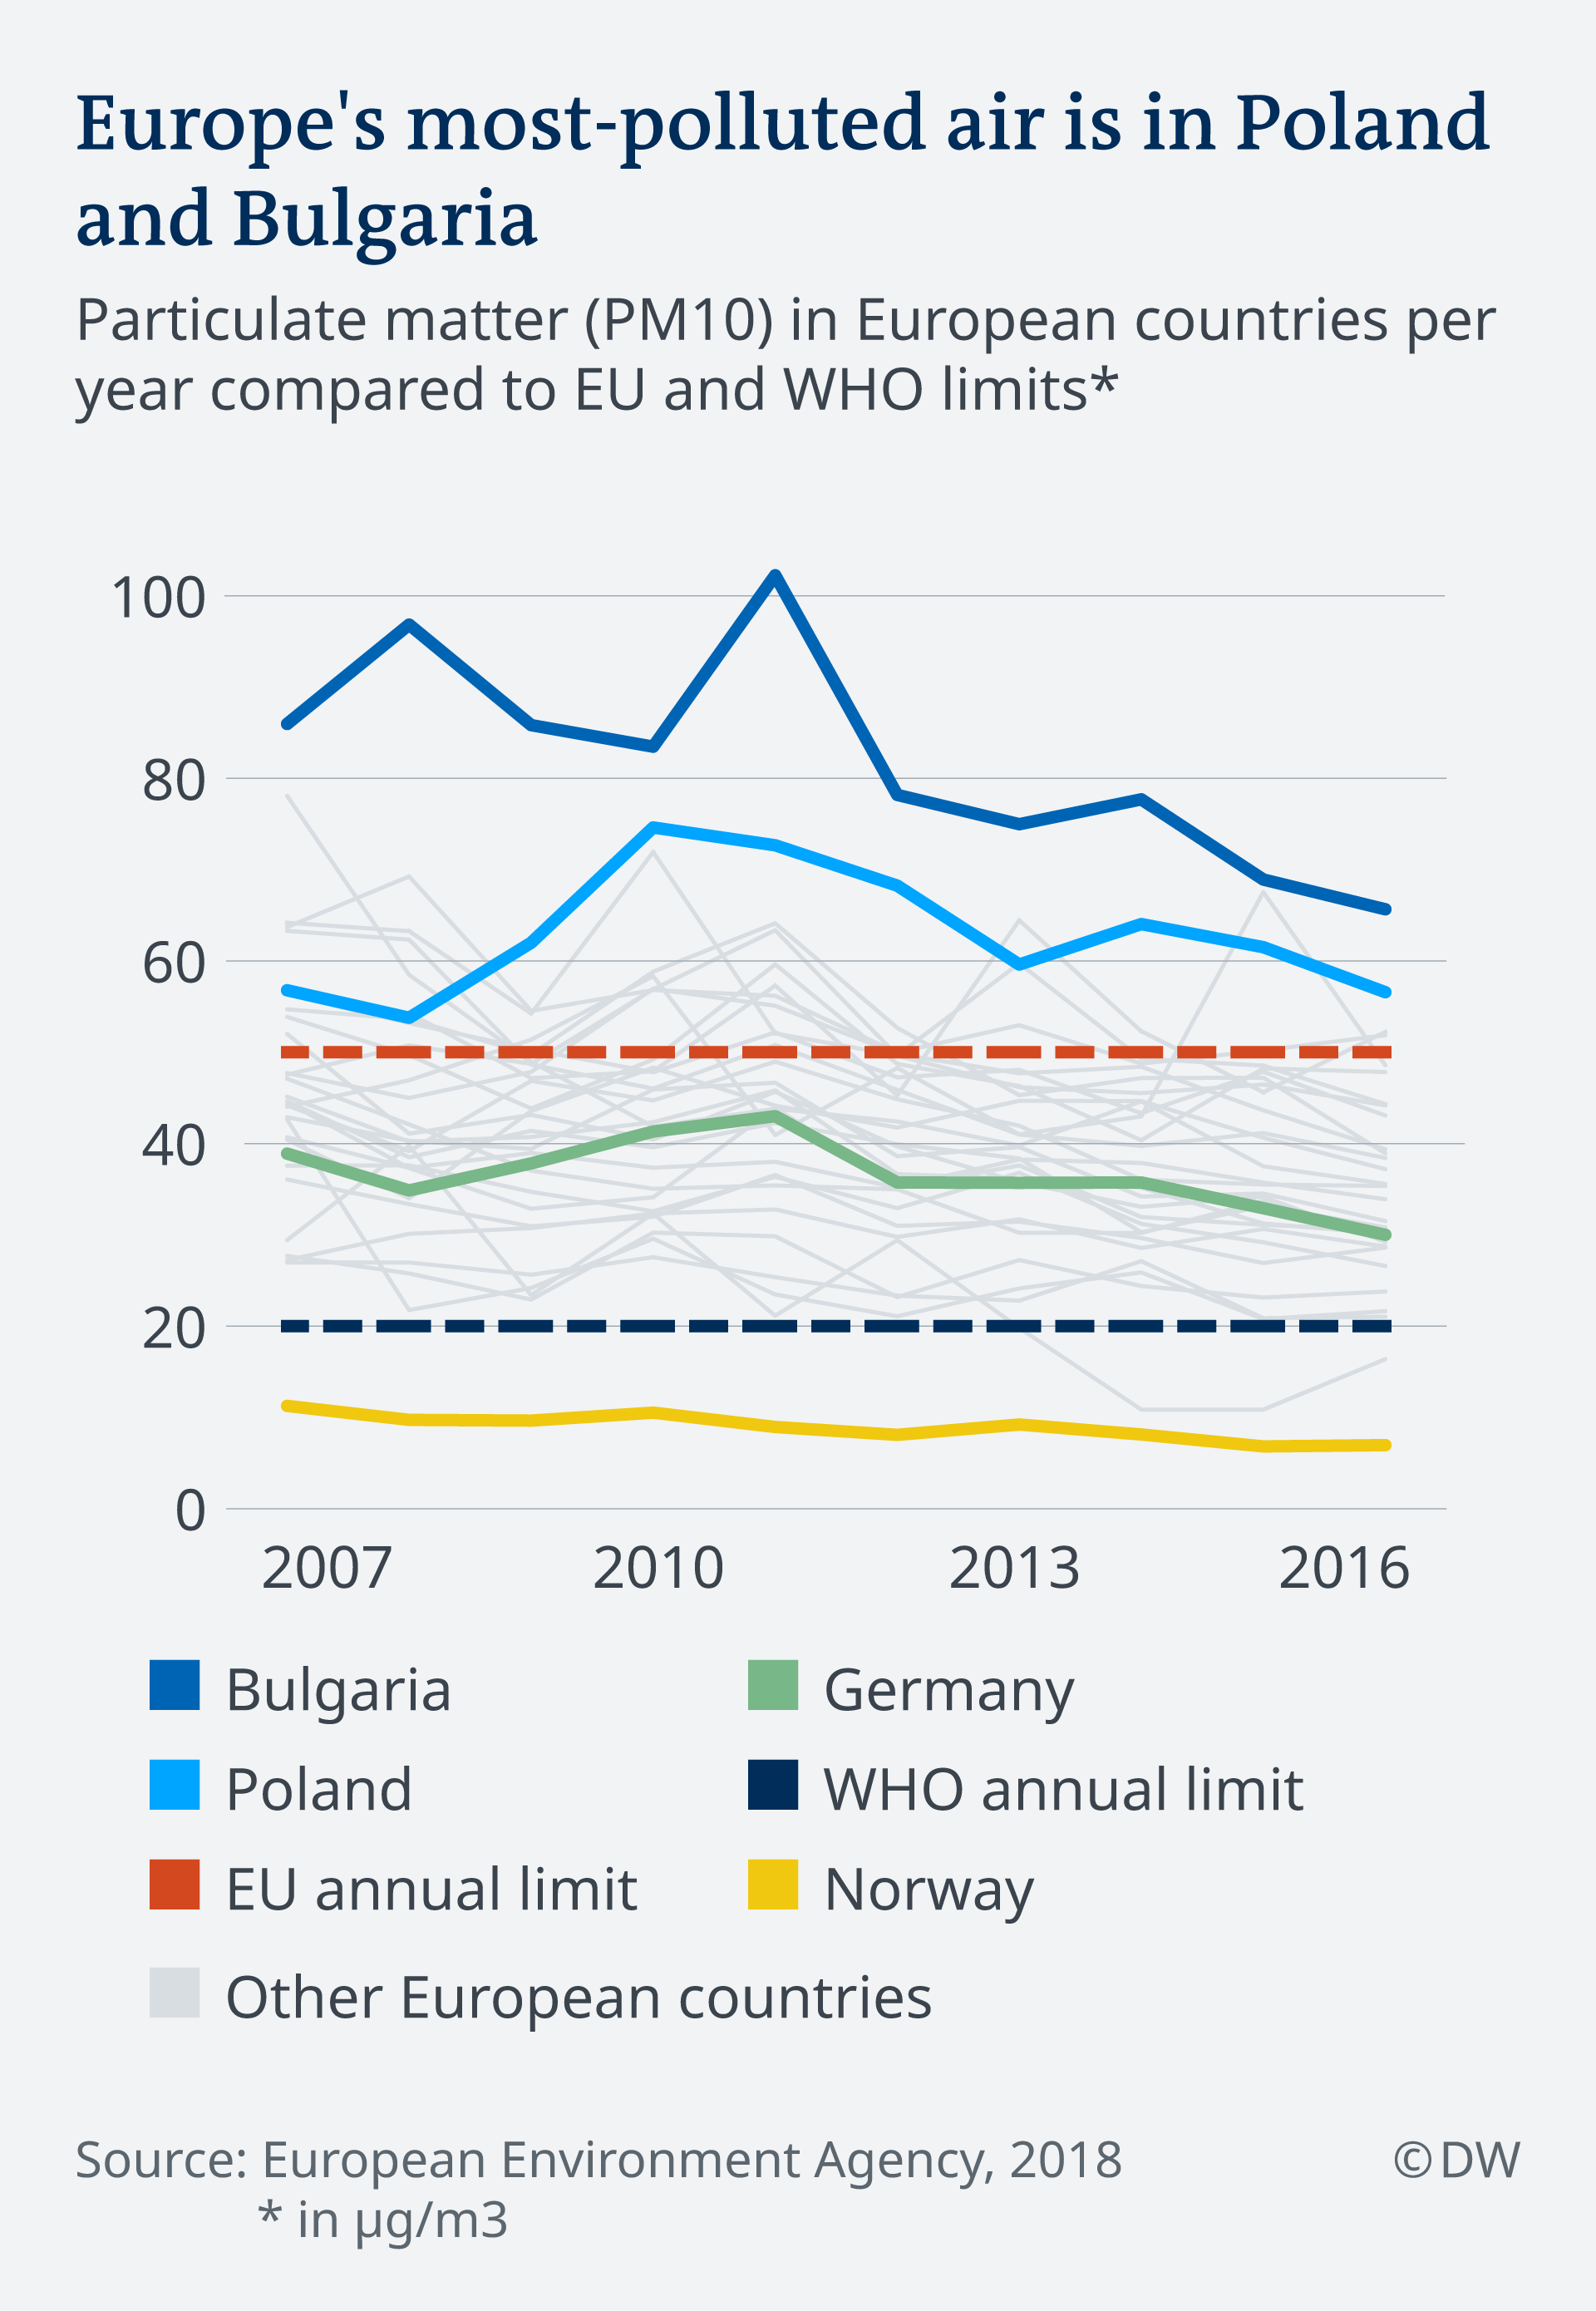 Graph lines comparing air pollution in Bulgaria and Poland to EU and WHO annual limits.